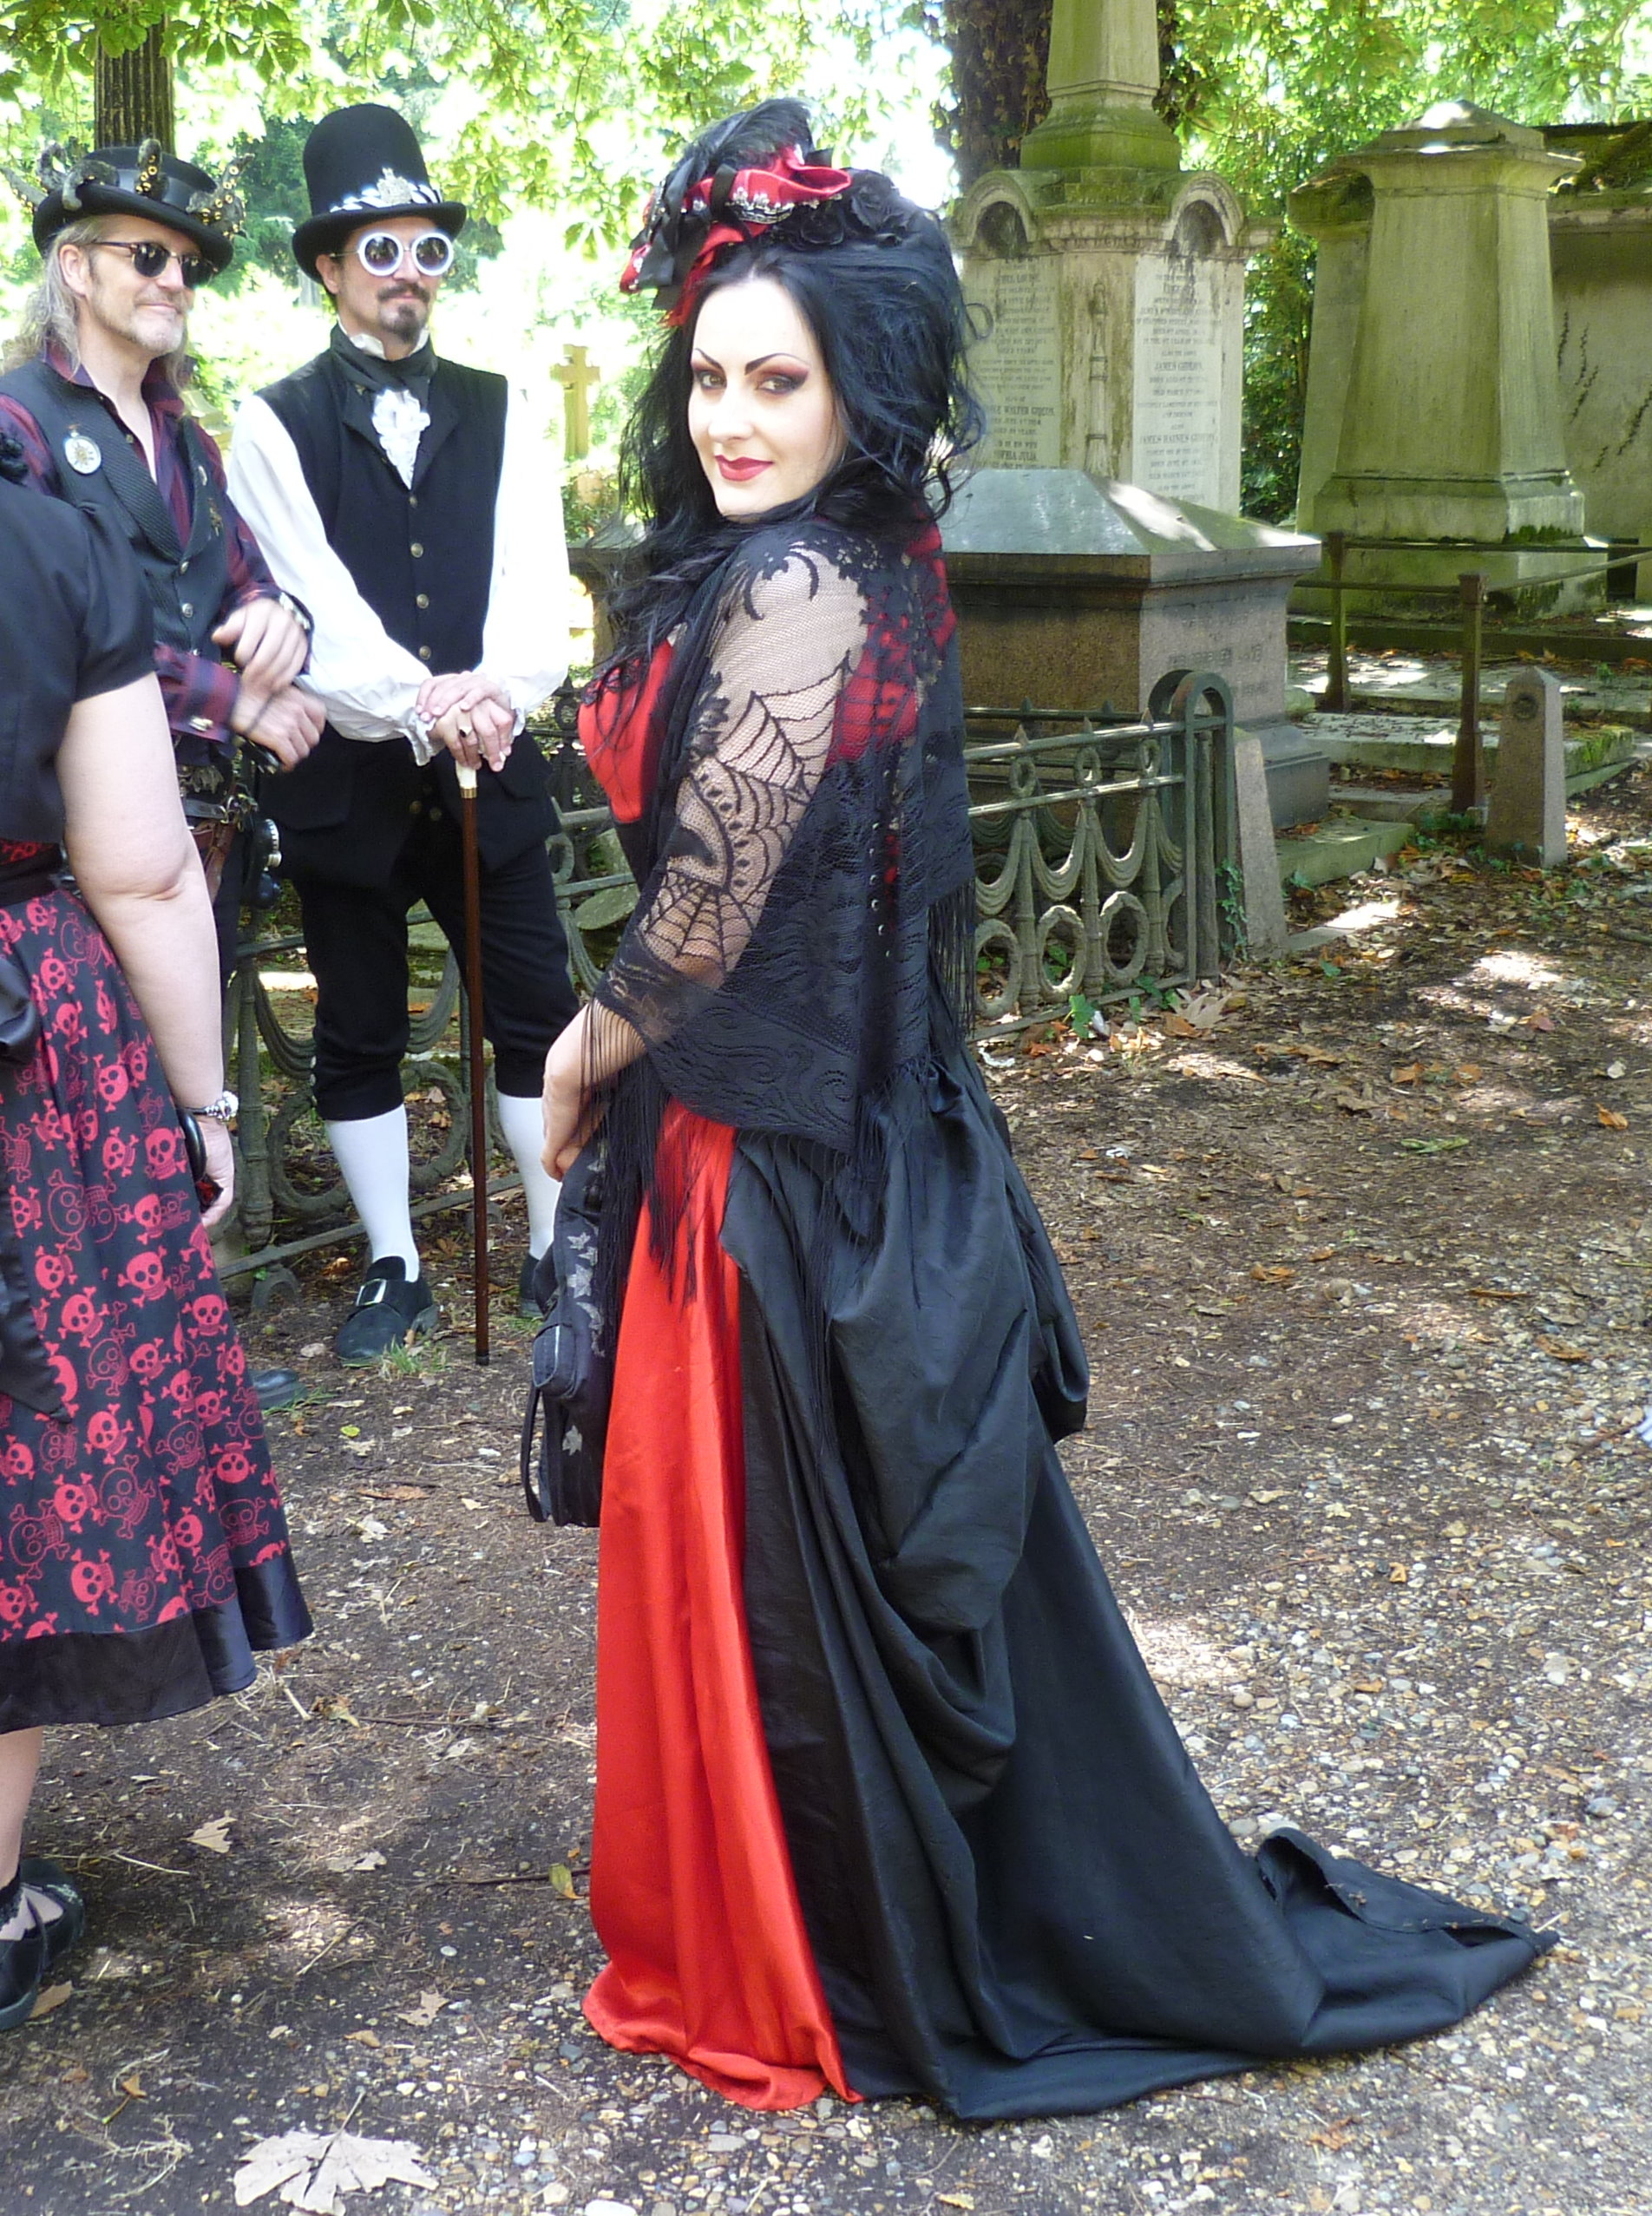 023 Essay Example What Does Fashion Mean To You Goth At Kensal Green Cemetery Stupendous Full